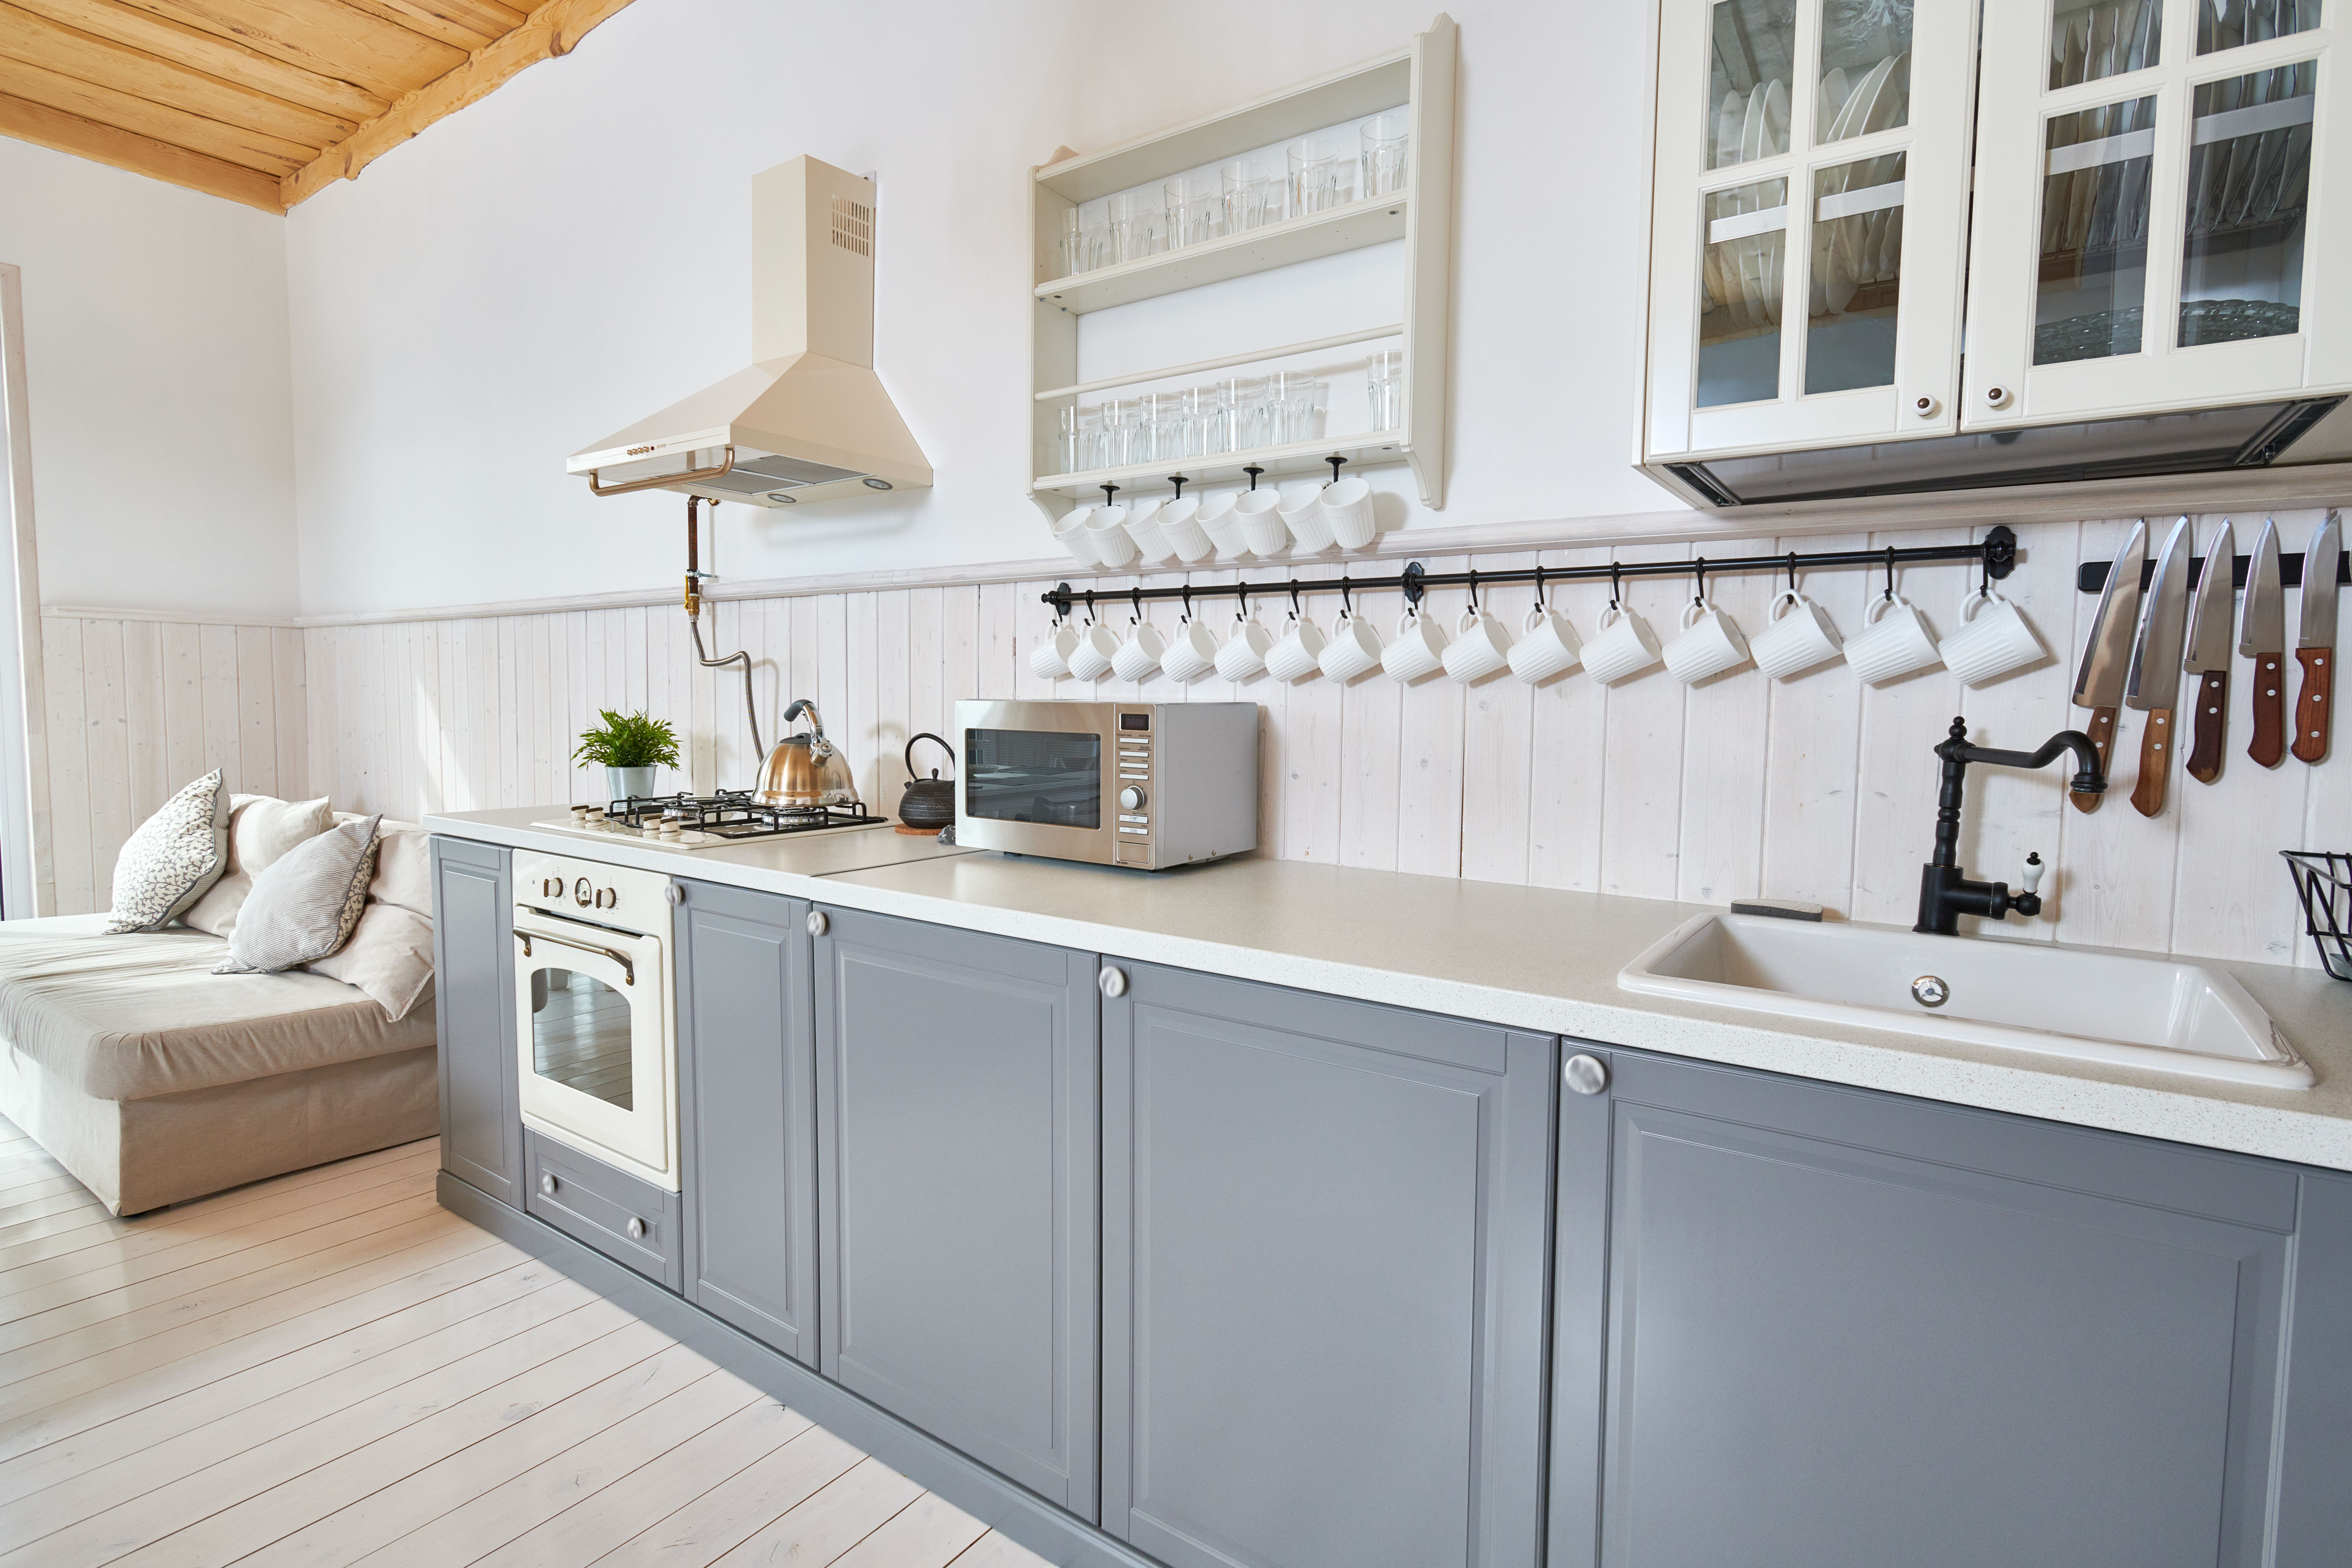 How to Spray-Paint Kitchen Cabinets | Spray paint kitchen ...